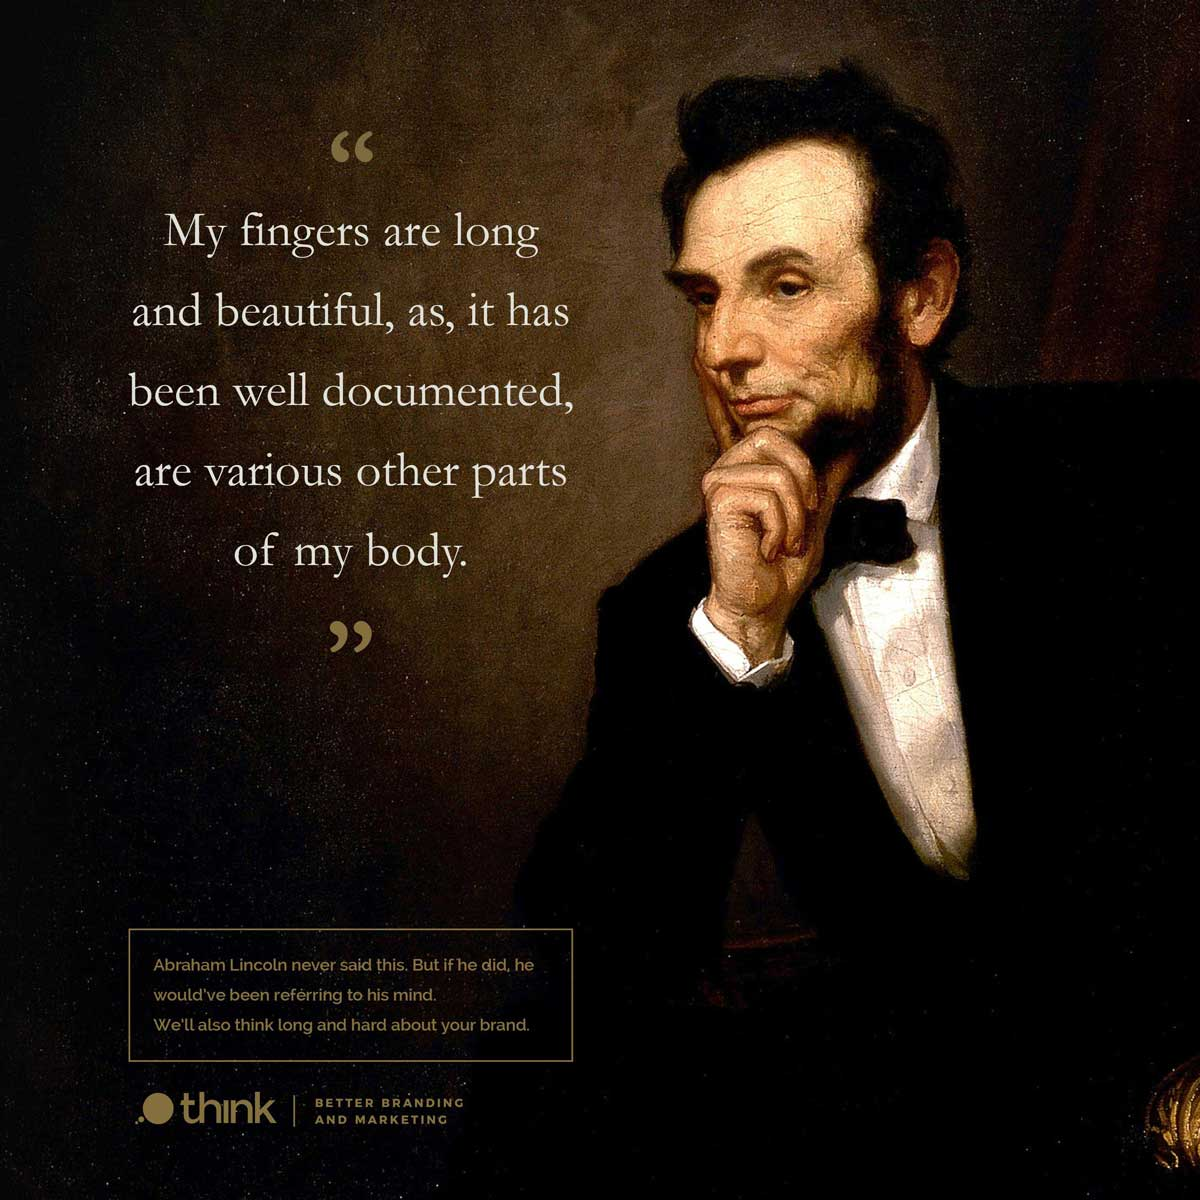 photo of Abraham Lincoln with a Donald Trump quote